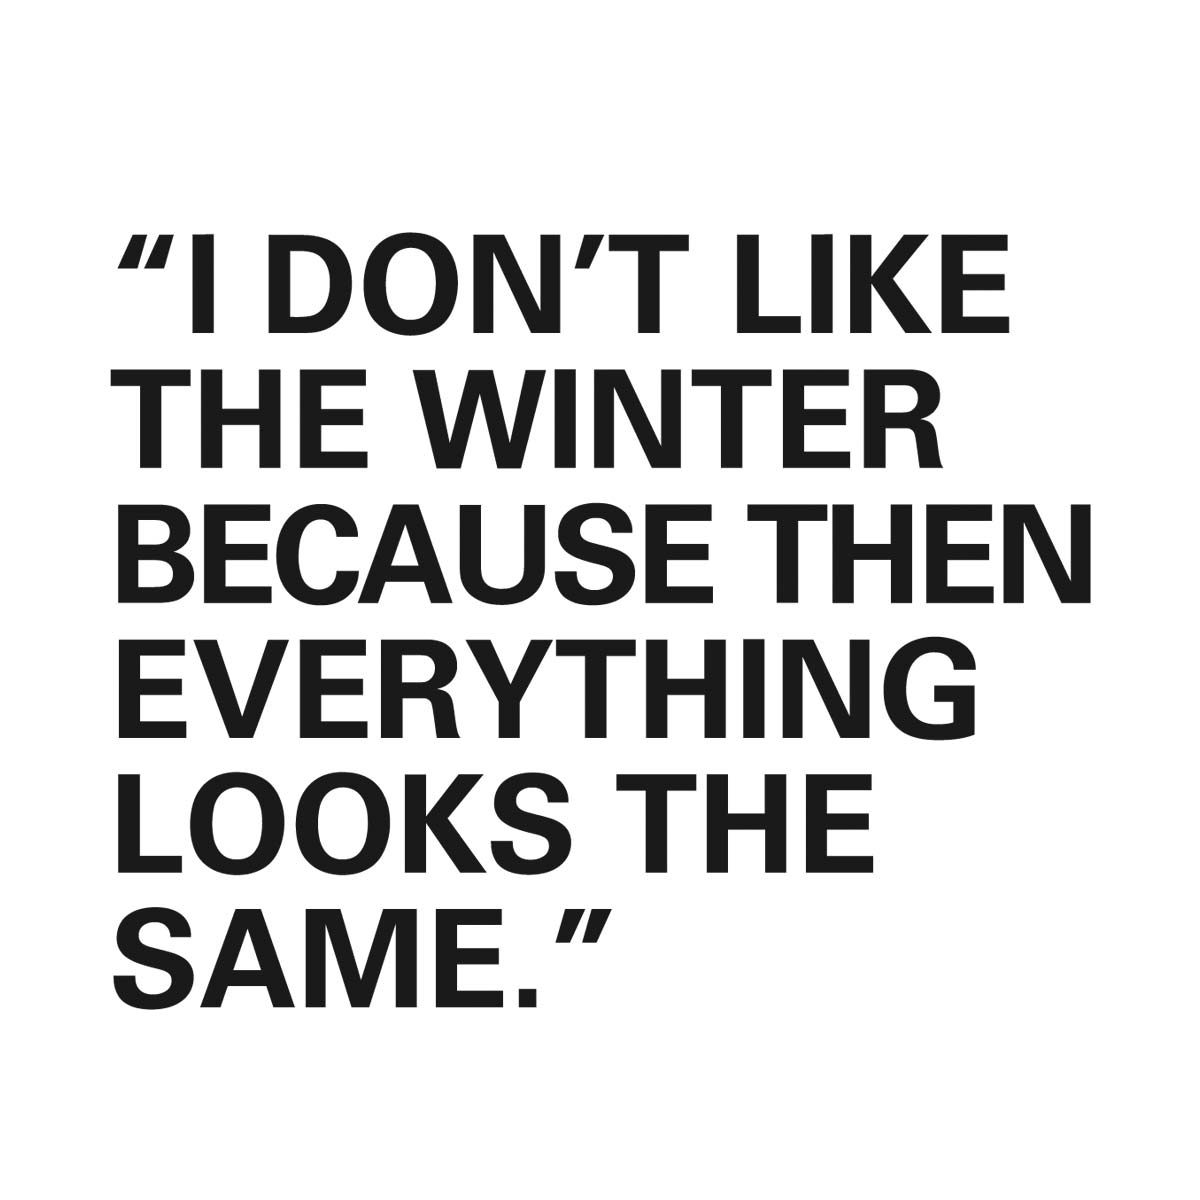 I don't like the winter because then everything looks the same.